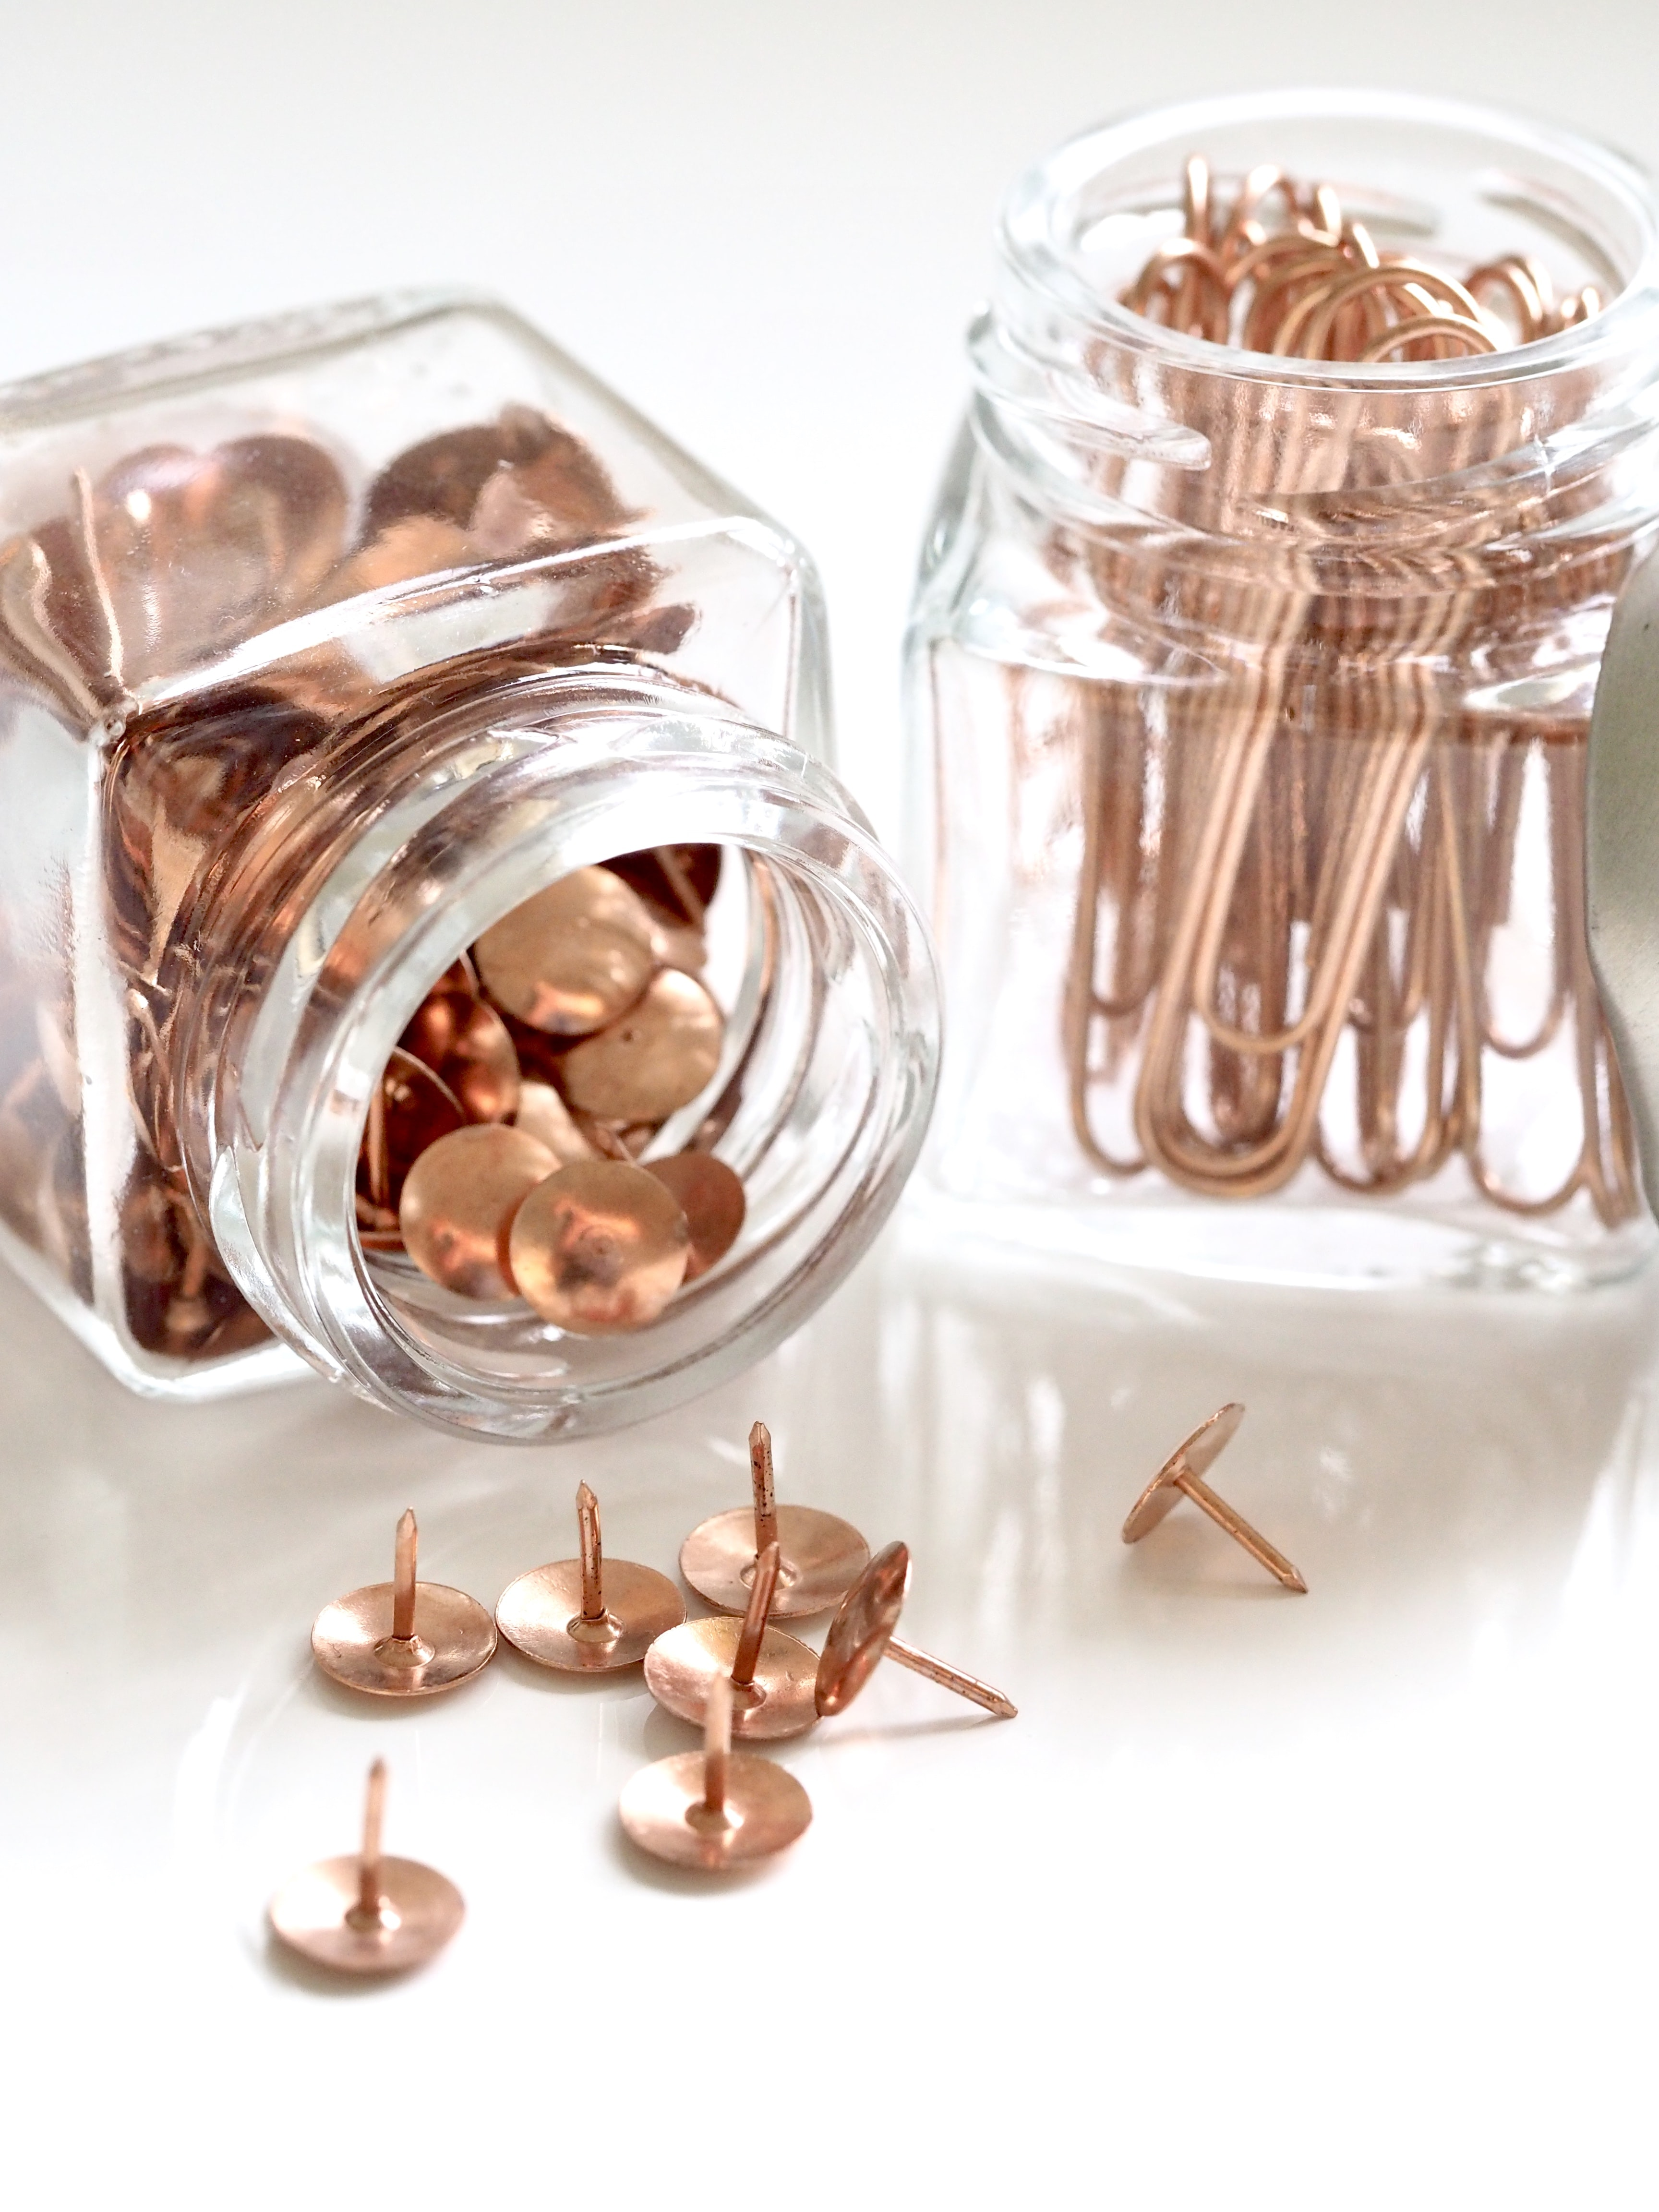 photo of bronze-colored thumb tacks and paper clips in clear glass bottles